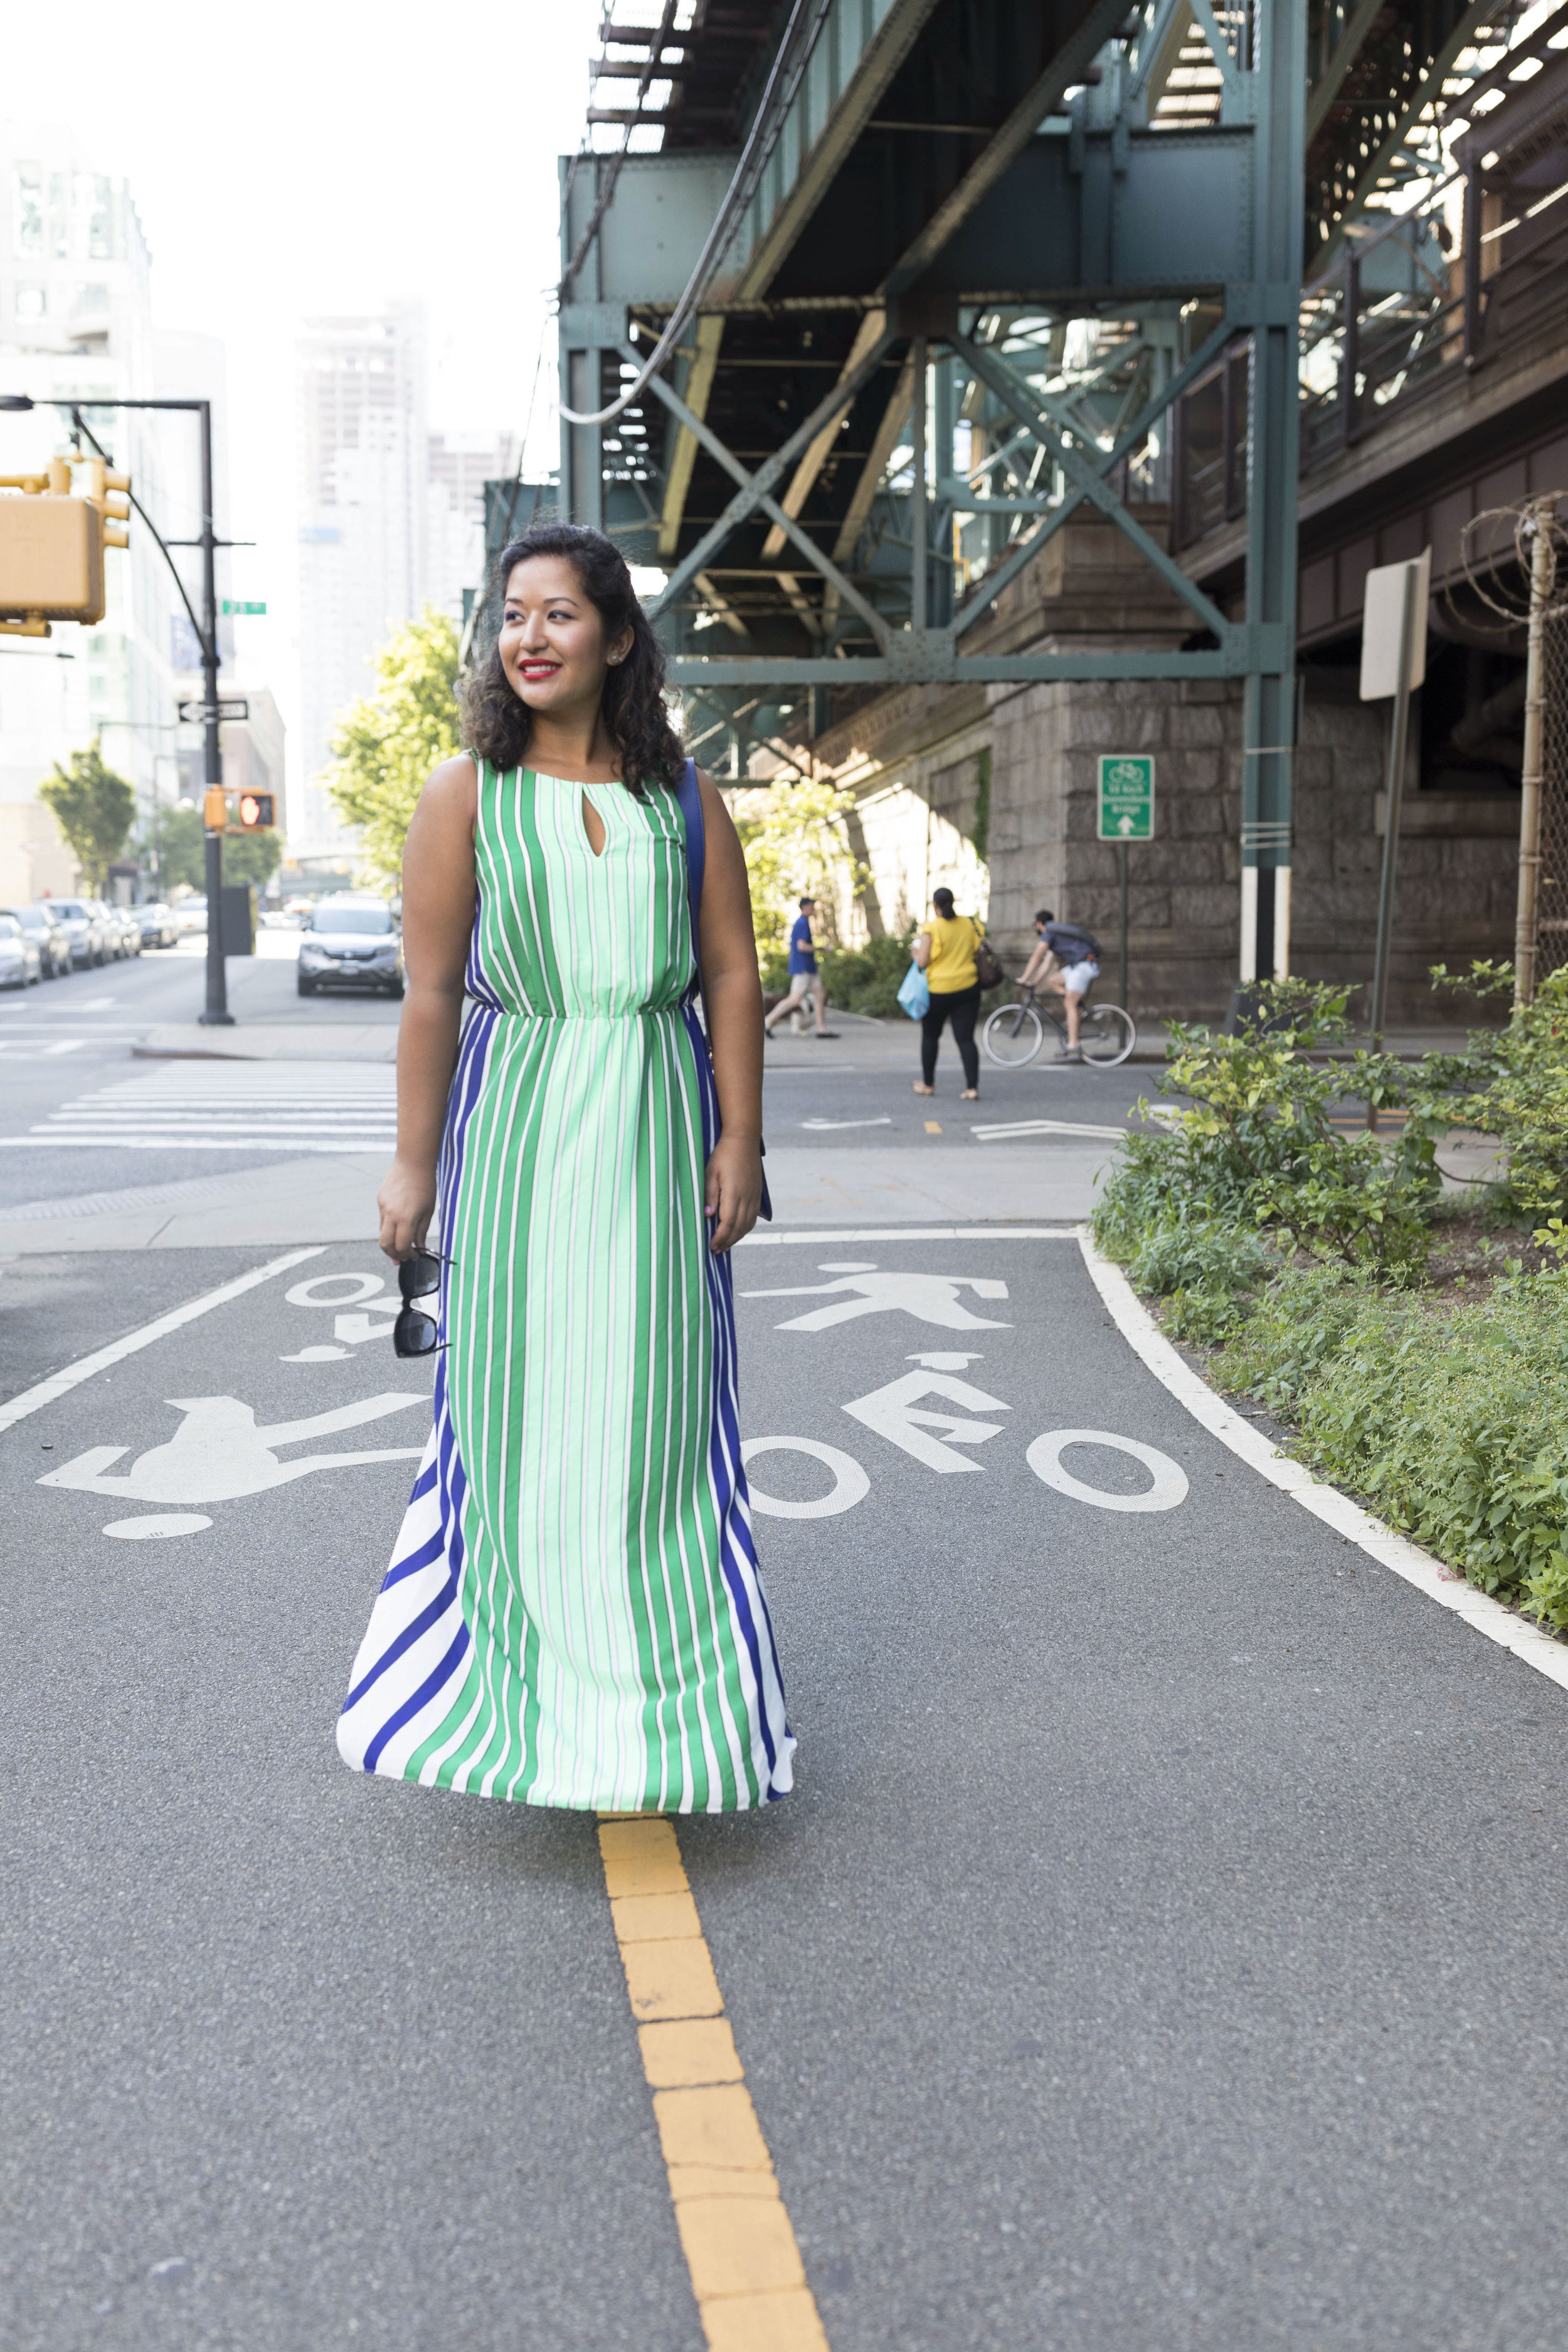 Krity S x Adrianna Papell x Stripped Maxi1.jpg